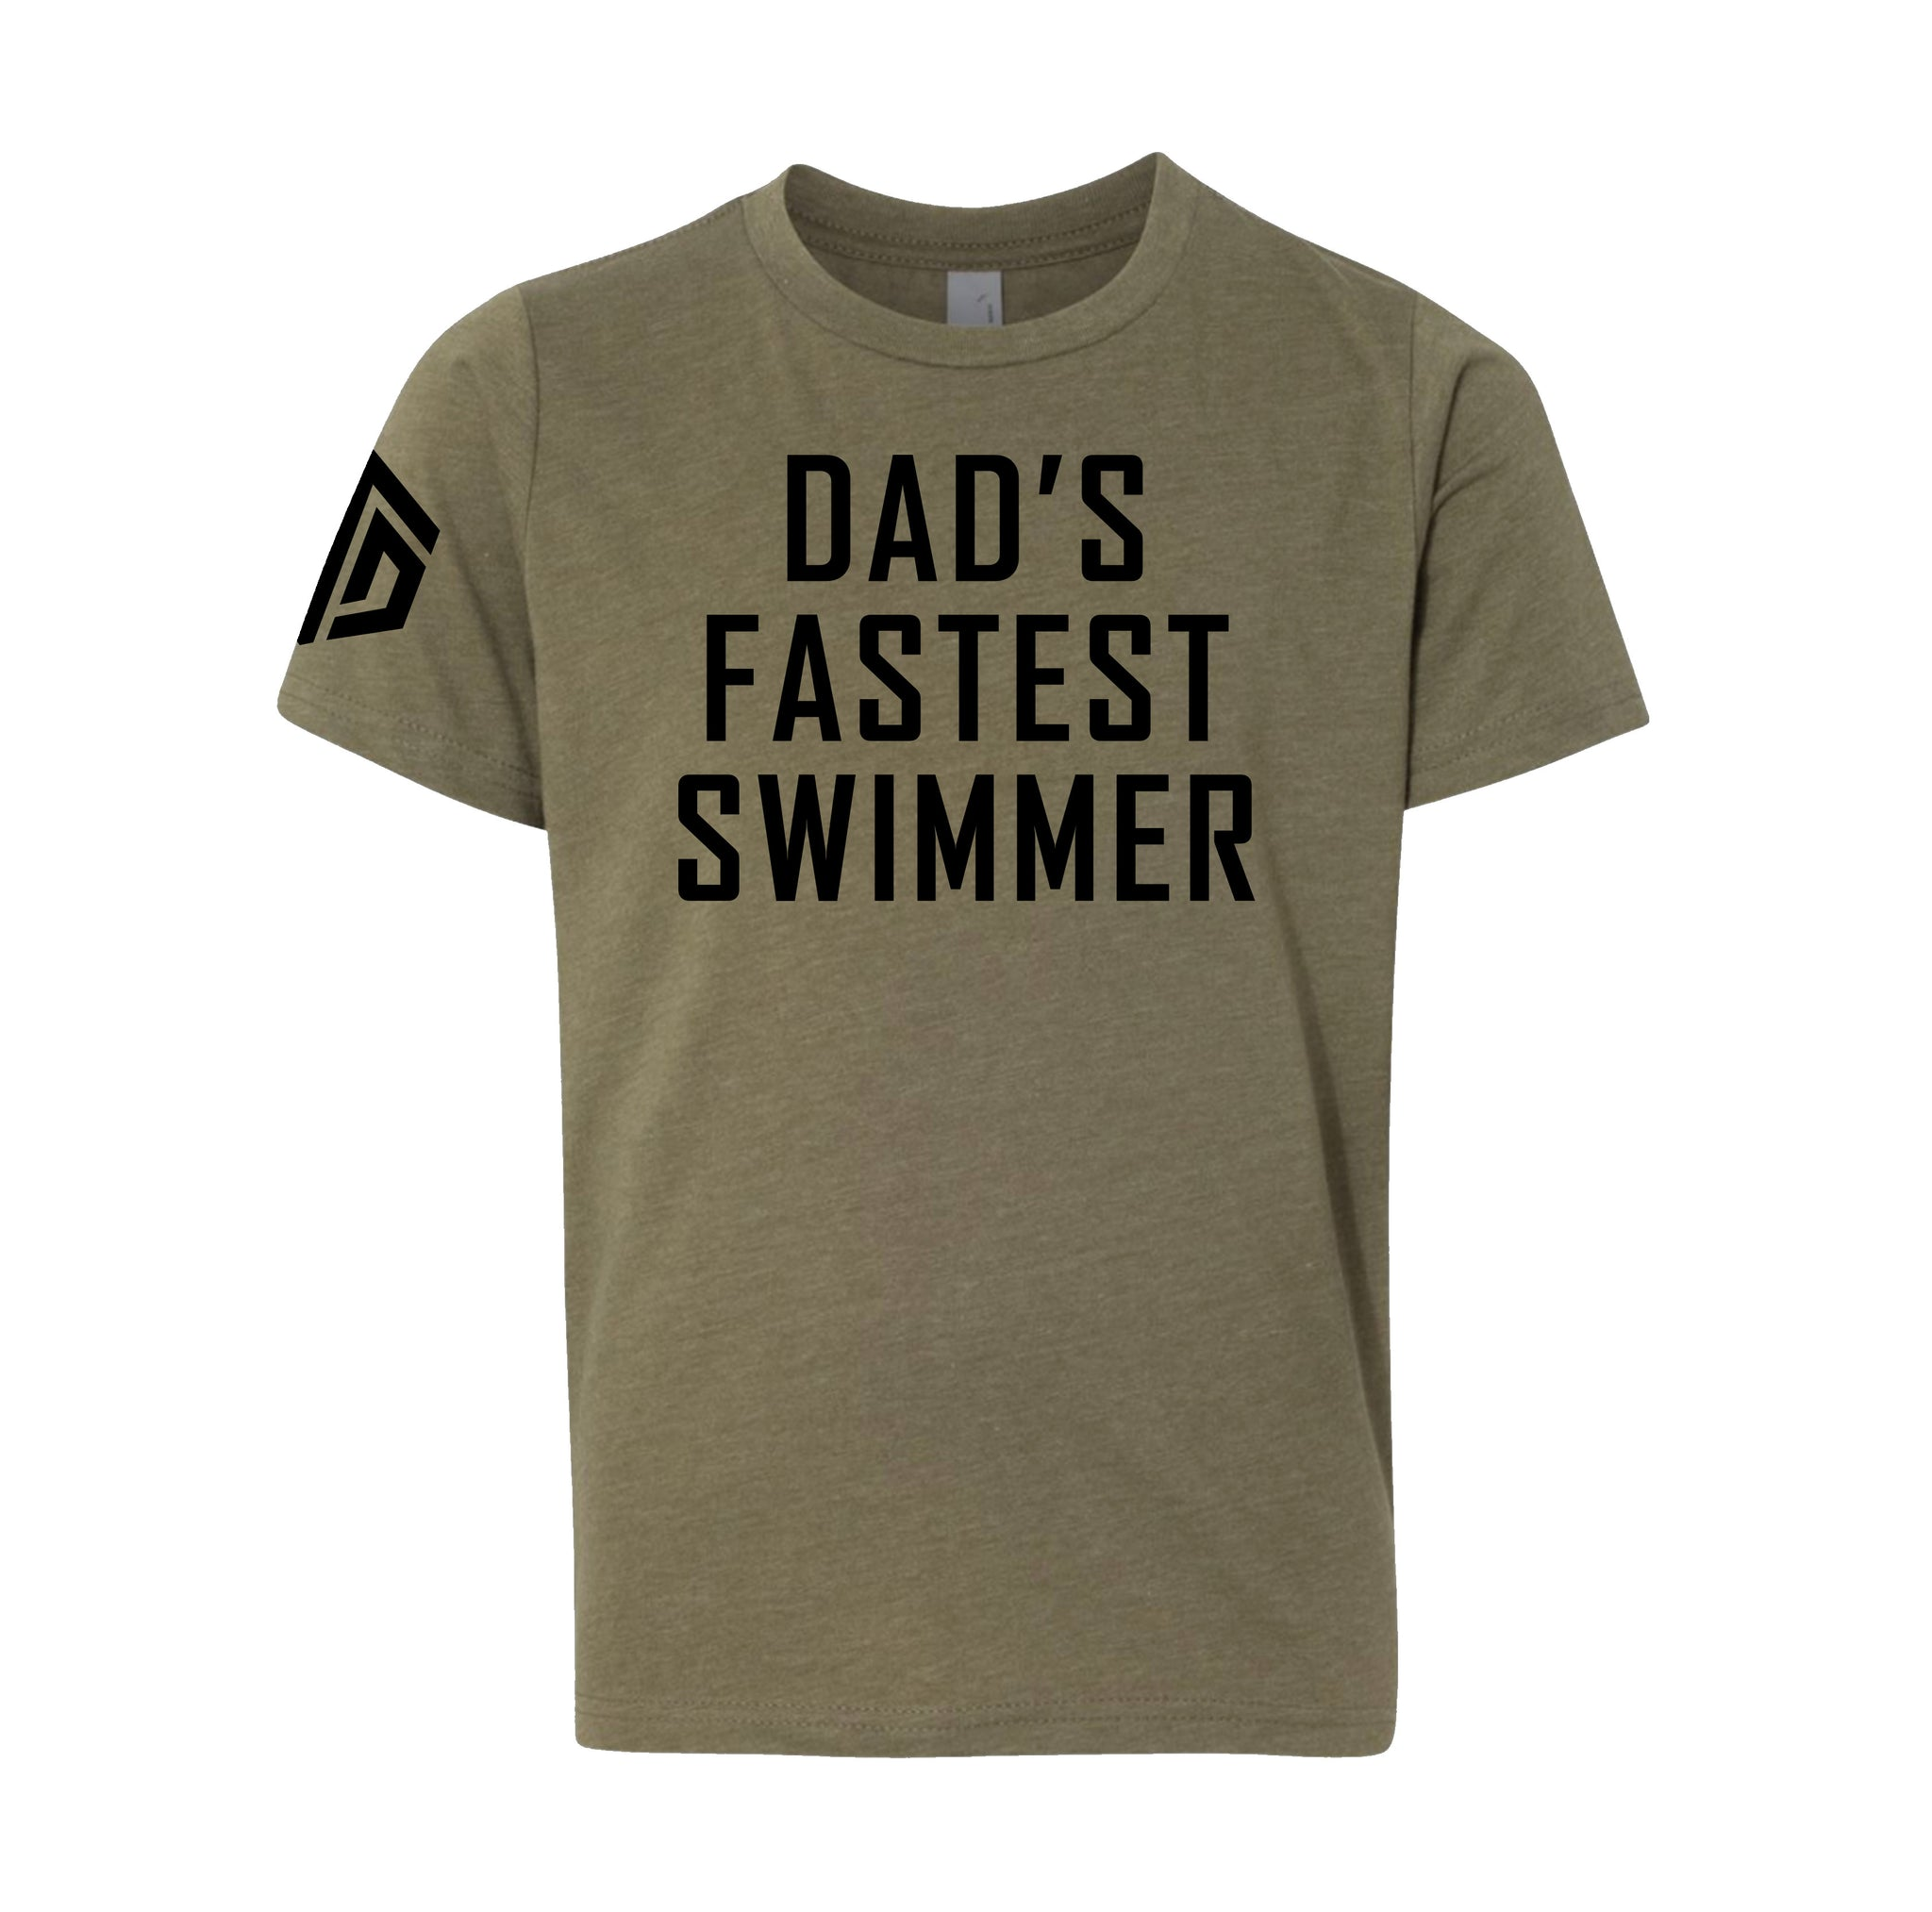 Dad's Fastest Swimmer